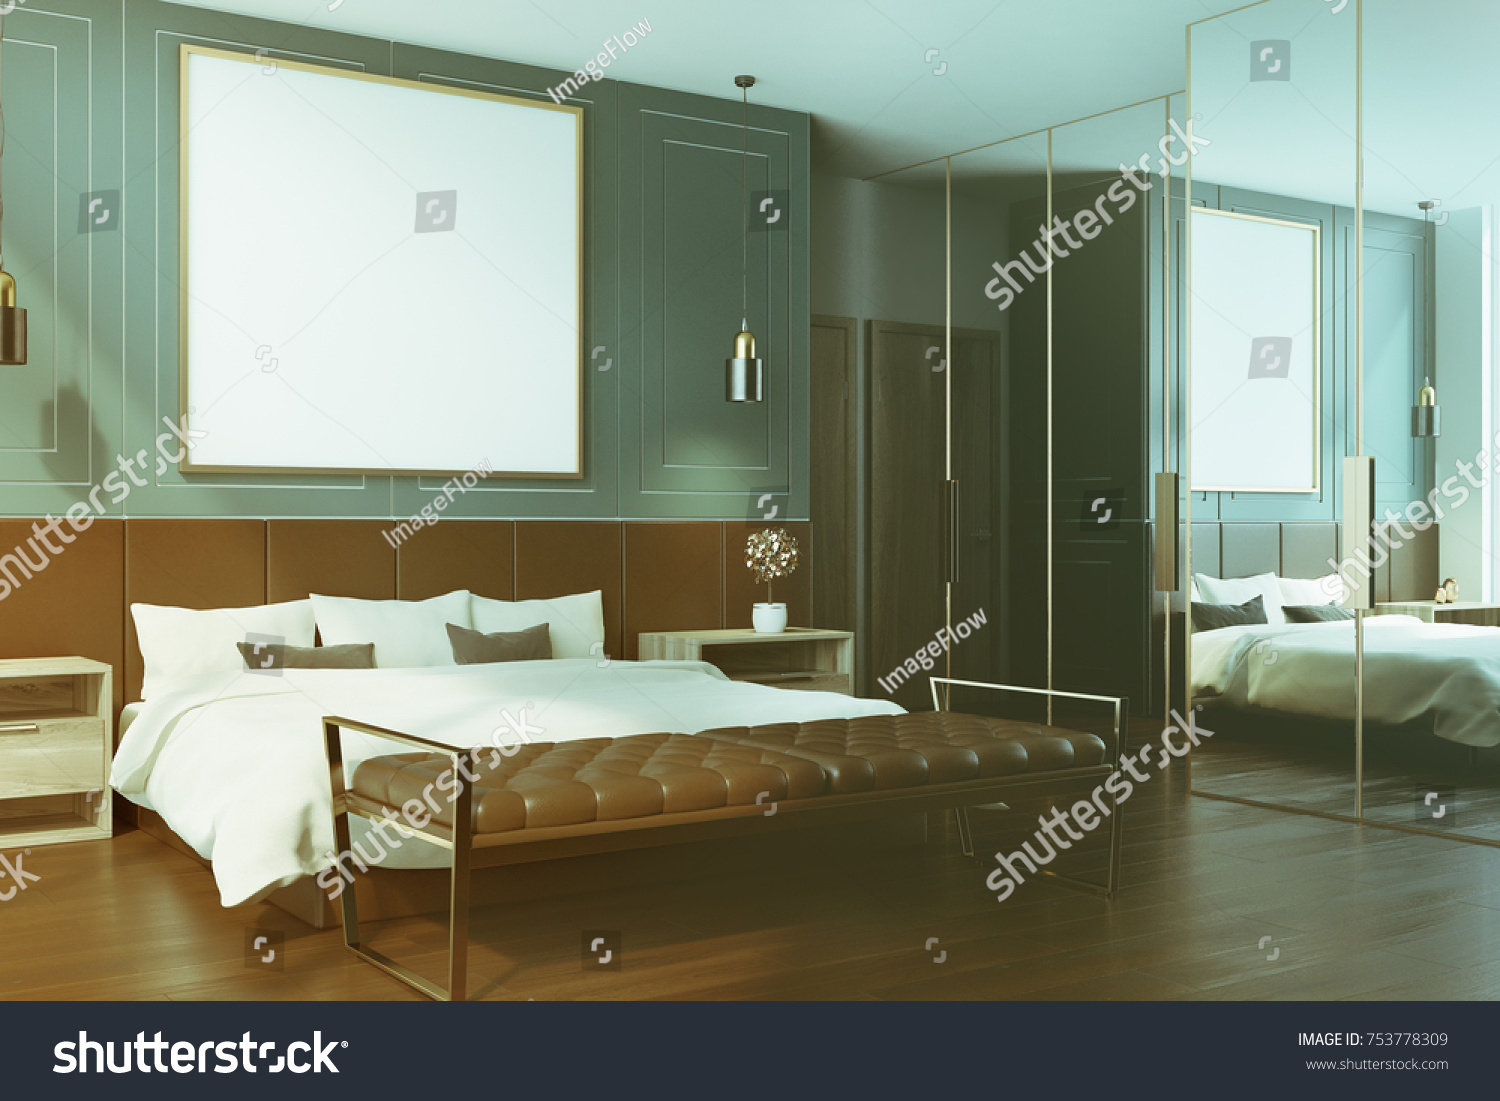 blue bedroom interior with a dark wooden floor a double bed with a framed square